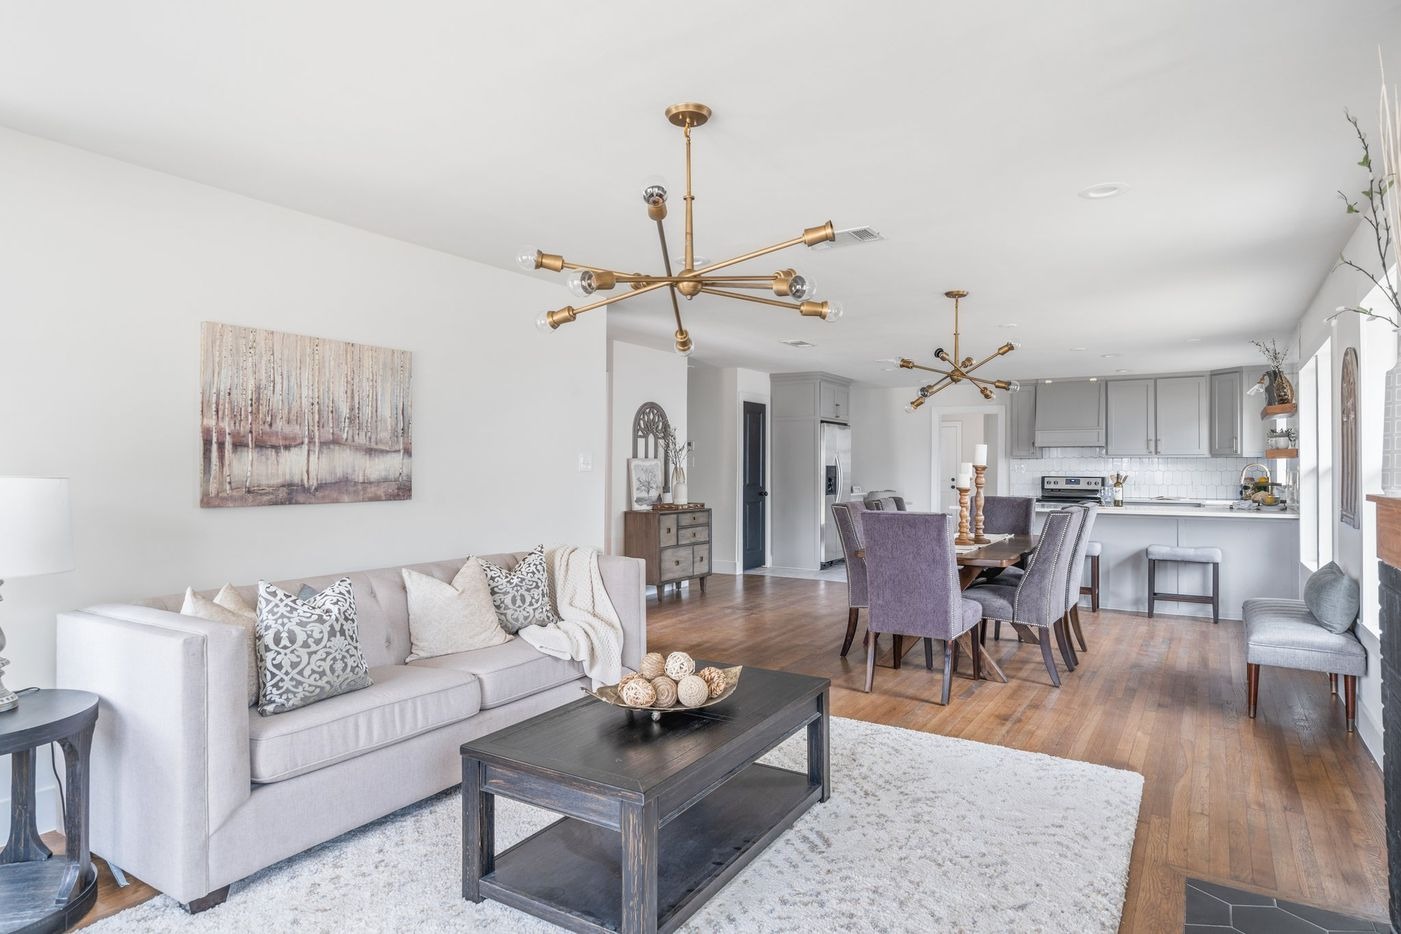 Take a look inside the home at 852 E. Texas St. in Grapevine, TX.